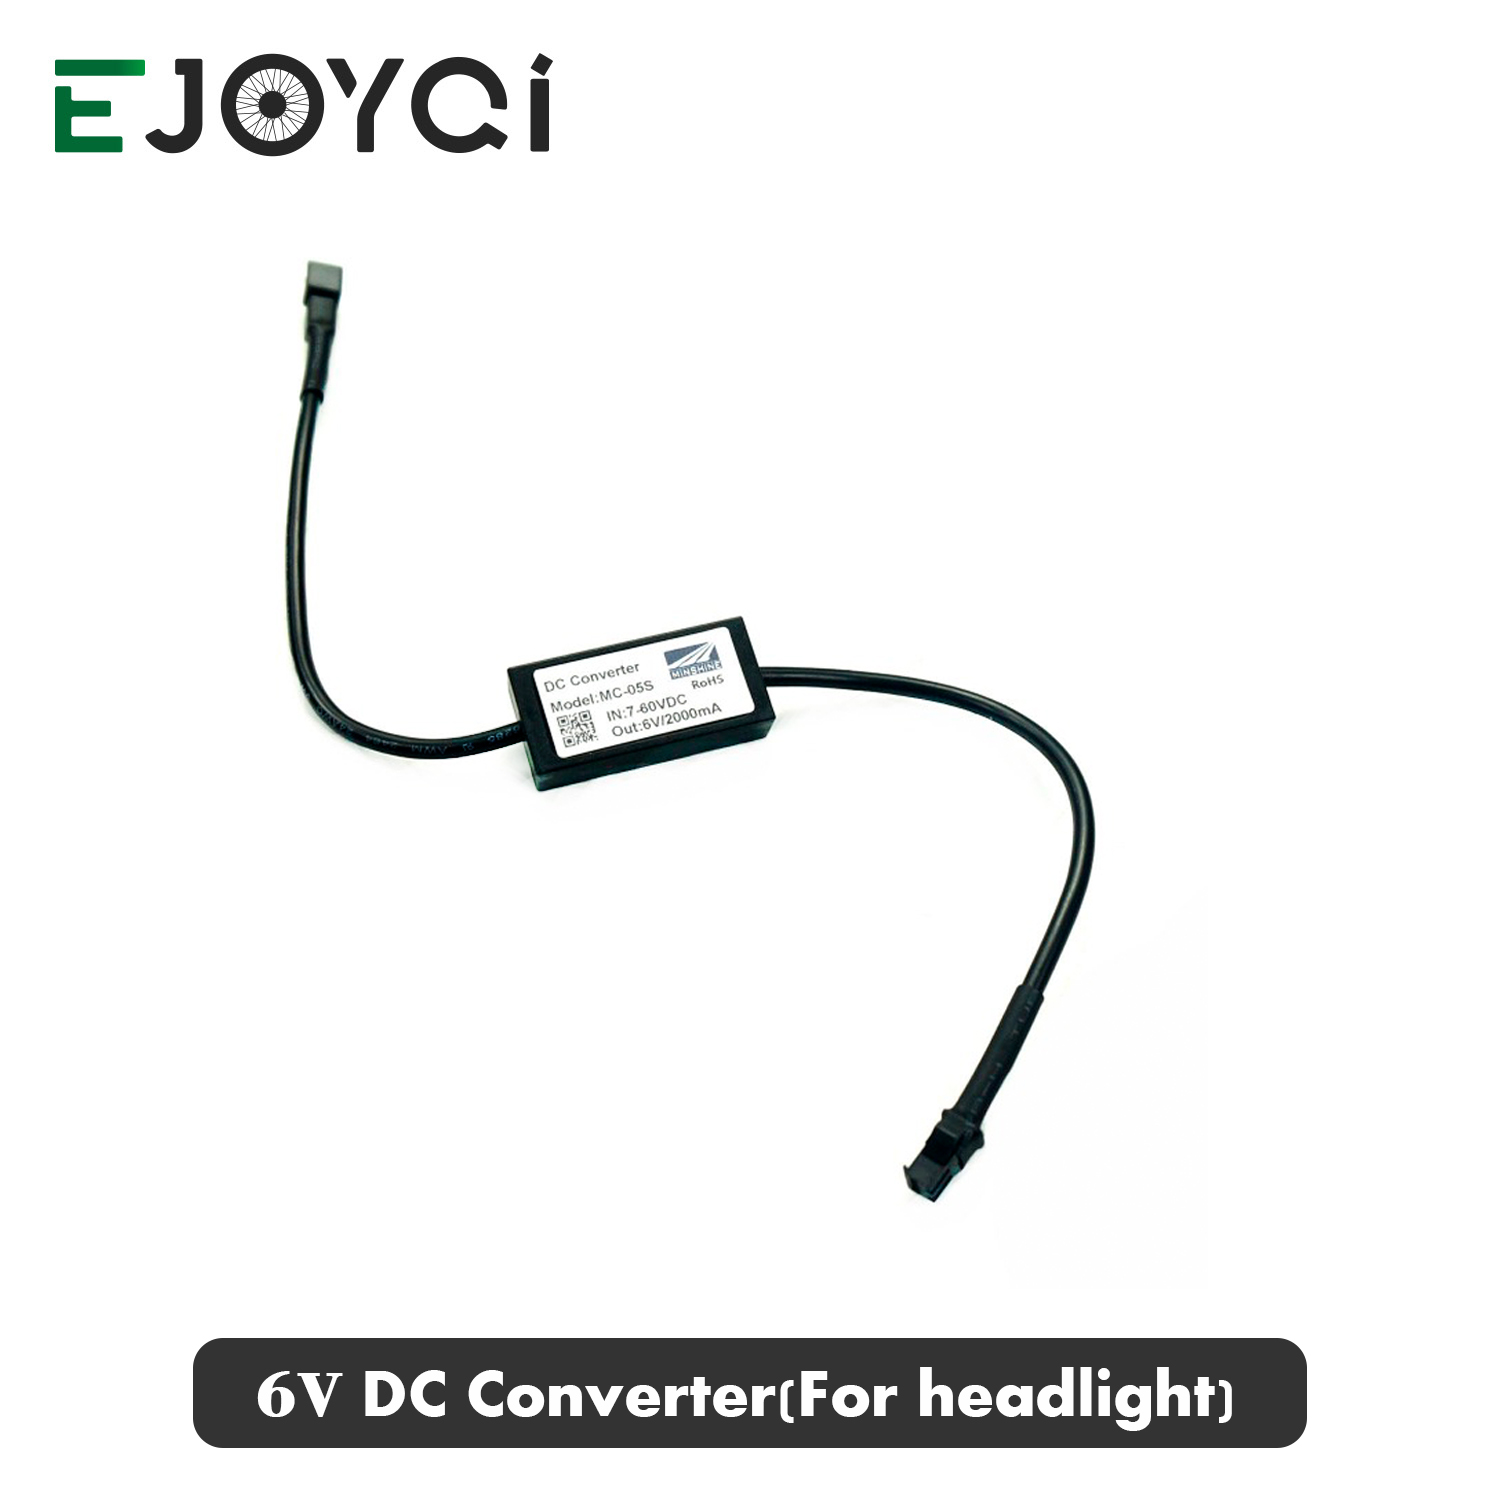 EJOYQI DC Converter 12V 24V 36V 48V 60V To 6V Ebike 6V Front Light Tail Light Function Electric Convertion Accessories